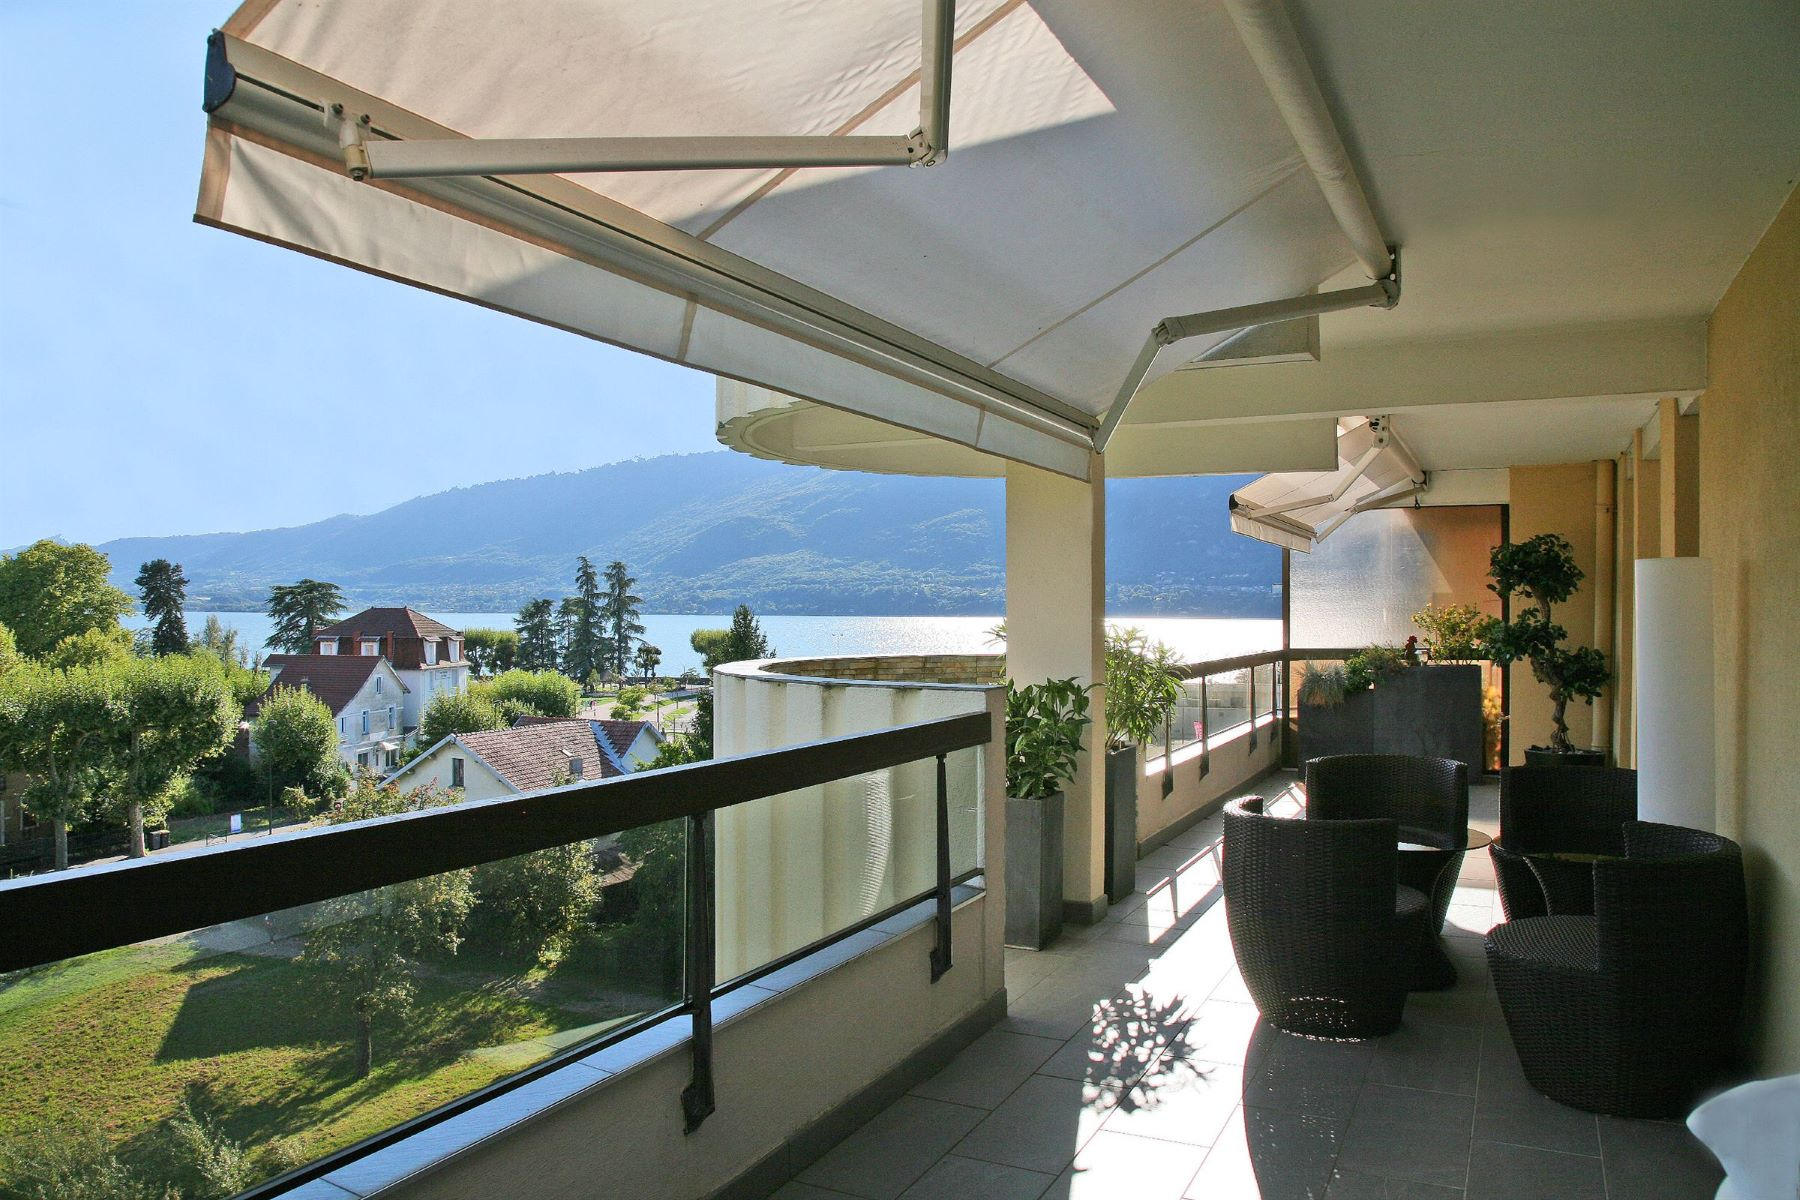 Apartment for Sale at Exclusive : Last floor apartment ovelrooking Lake Bourget Aix Les Bains, Rhone-Alpes, 73100 France